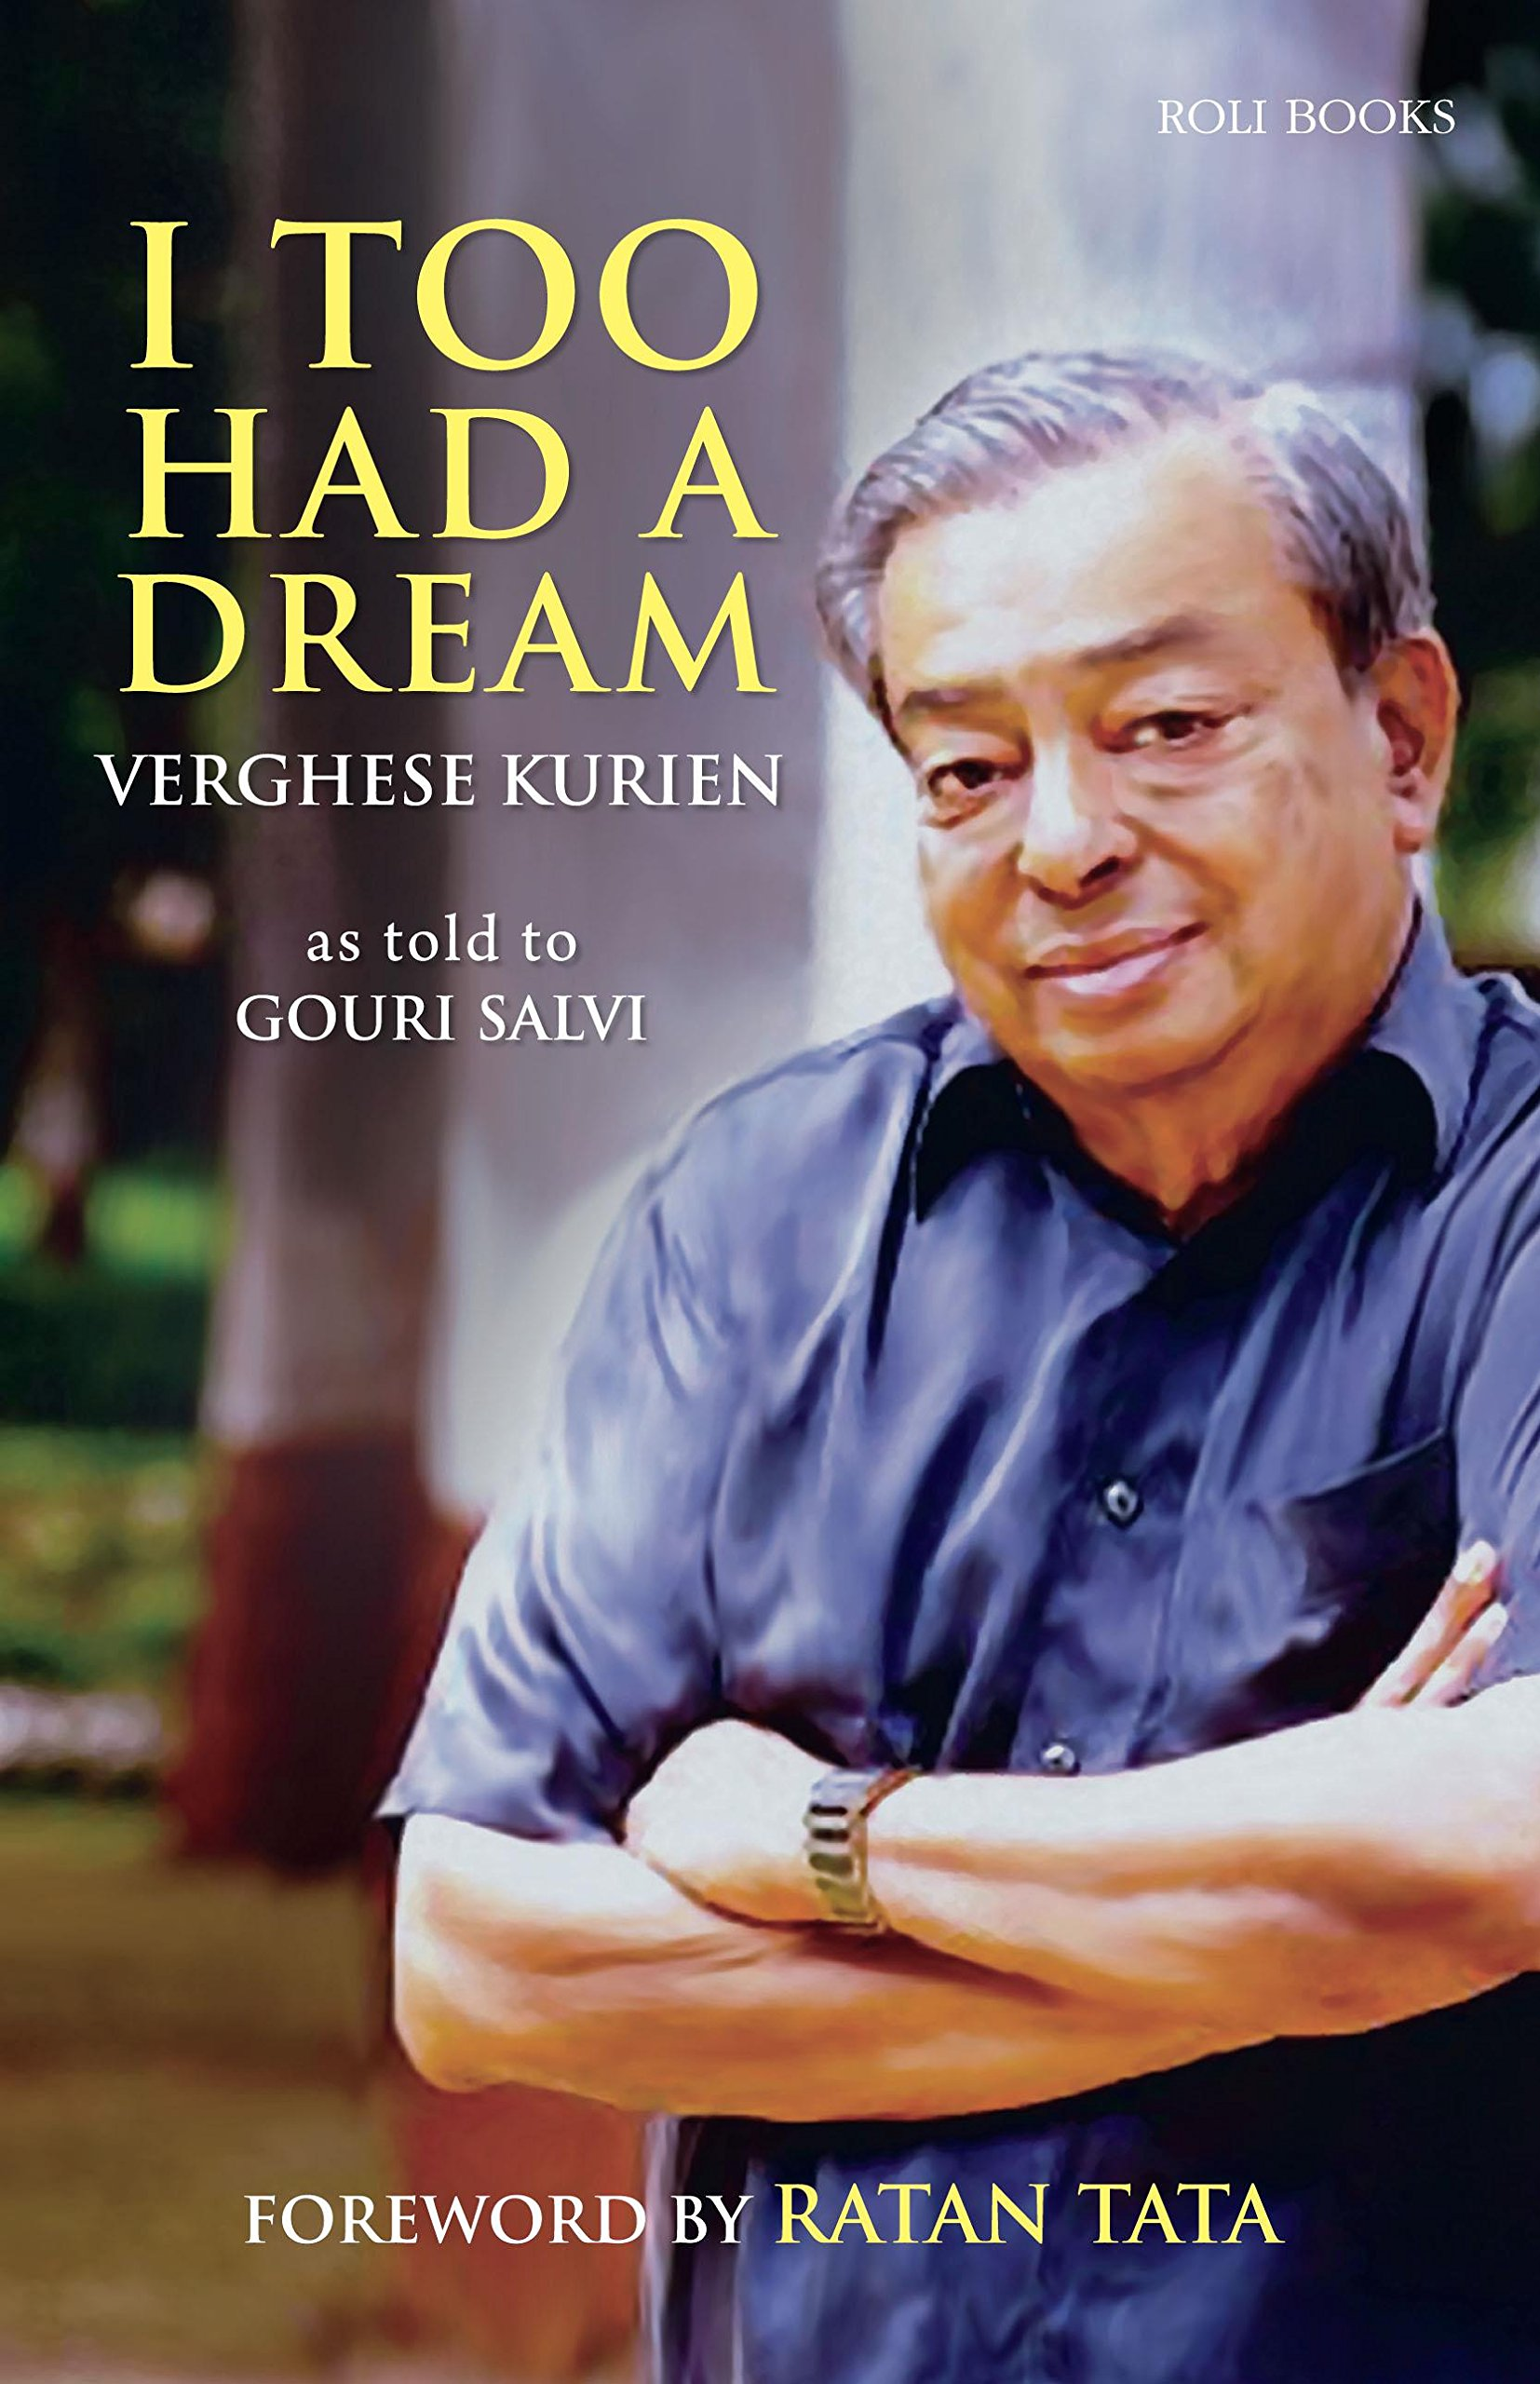 Here is Everything You Should Know About Verghese Kurien 12